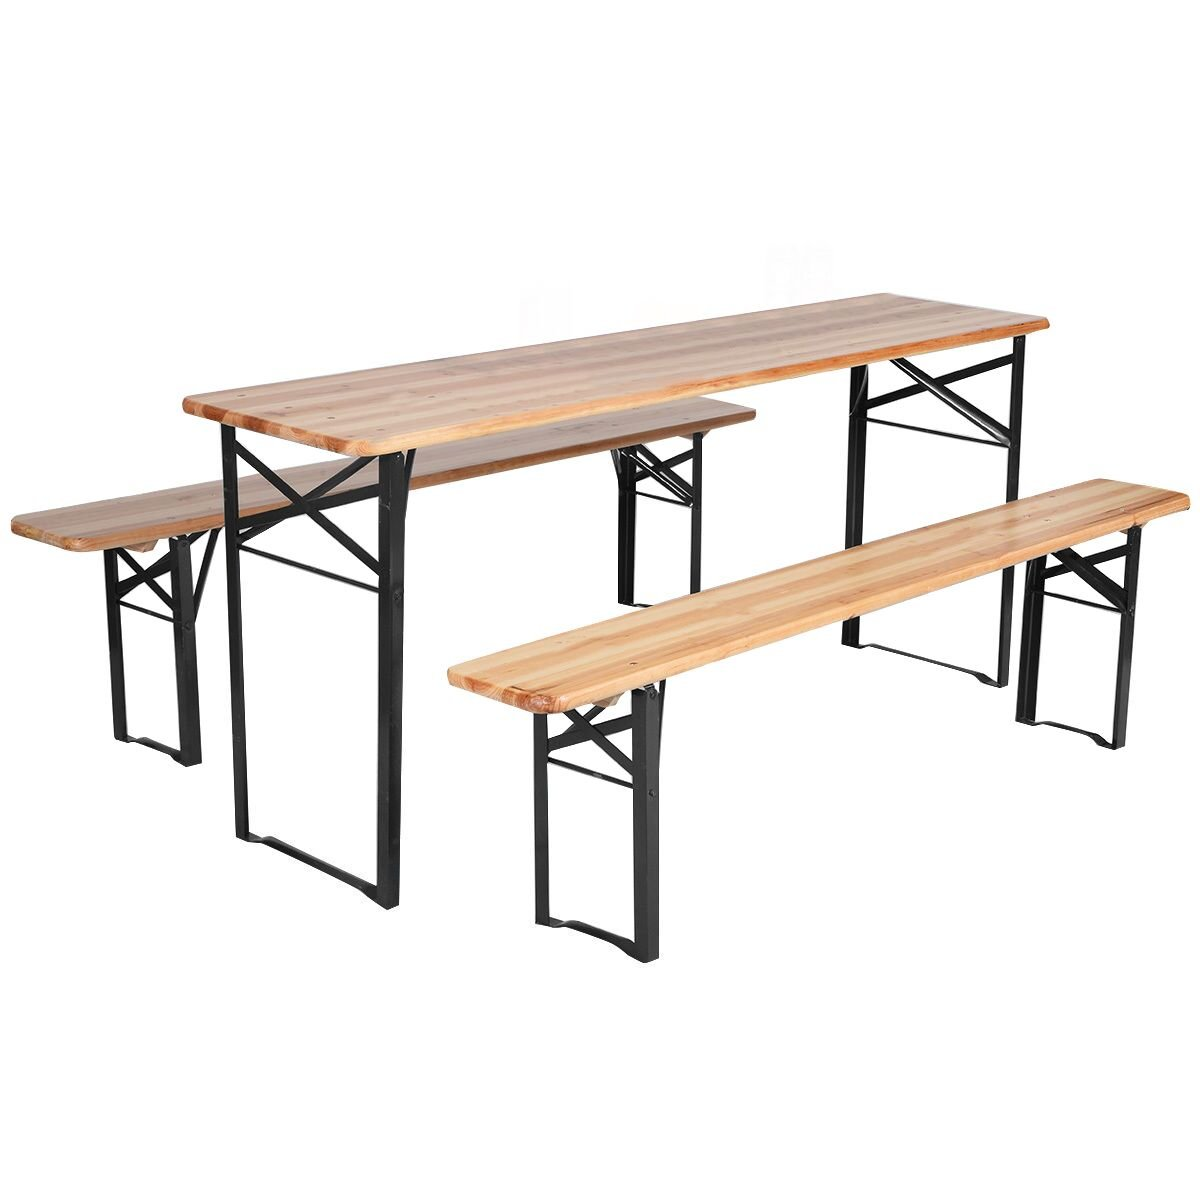 Cheap Wooden Swing Set With Picnic Table Find Wooden Swing Set With